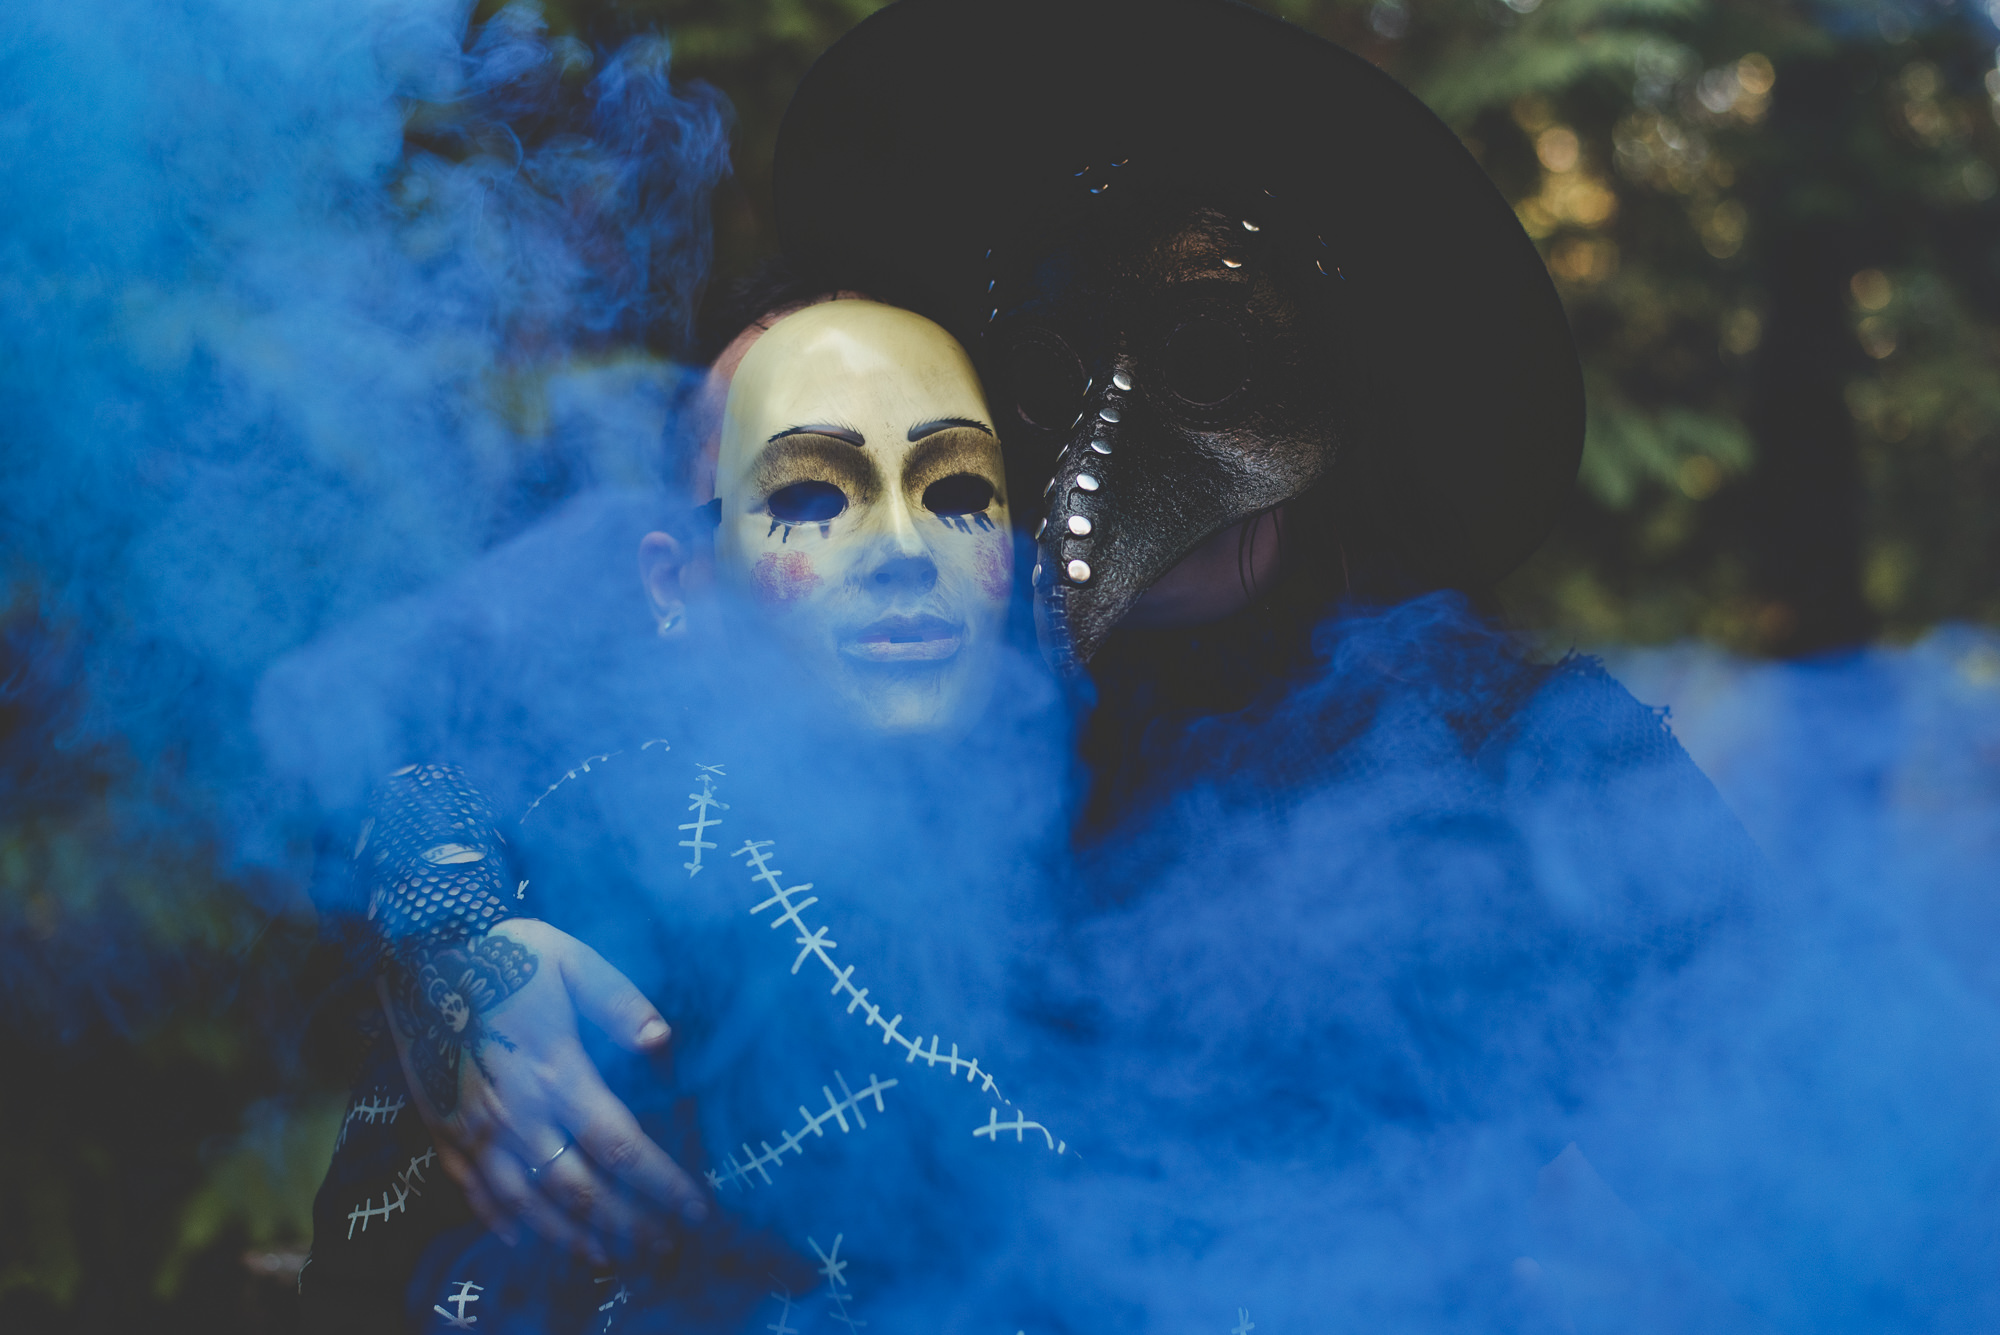 Smoke Bomb Hallowe'en Engagement | Vancouver Wedding Photographer